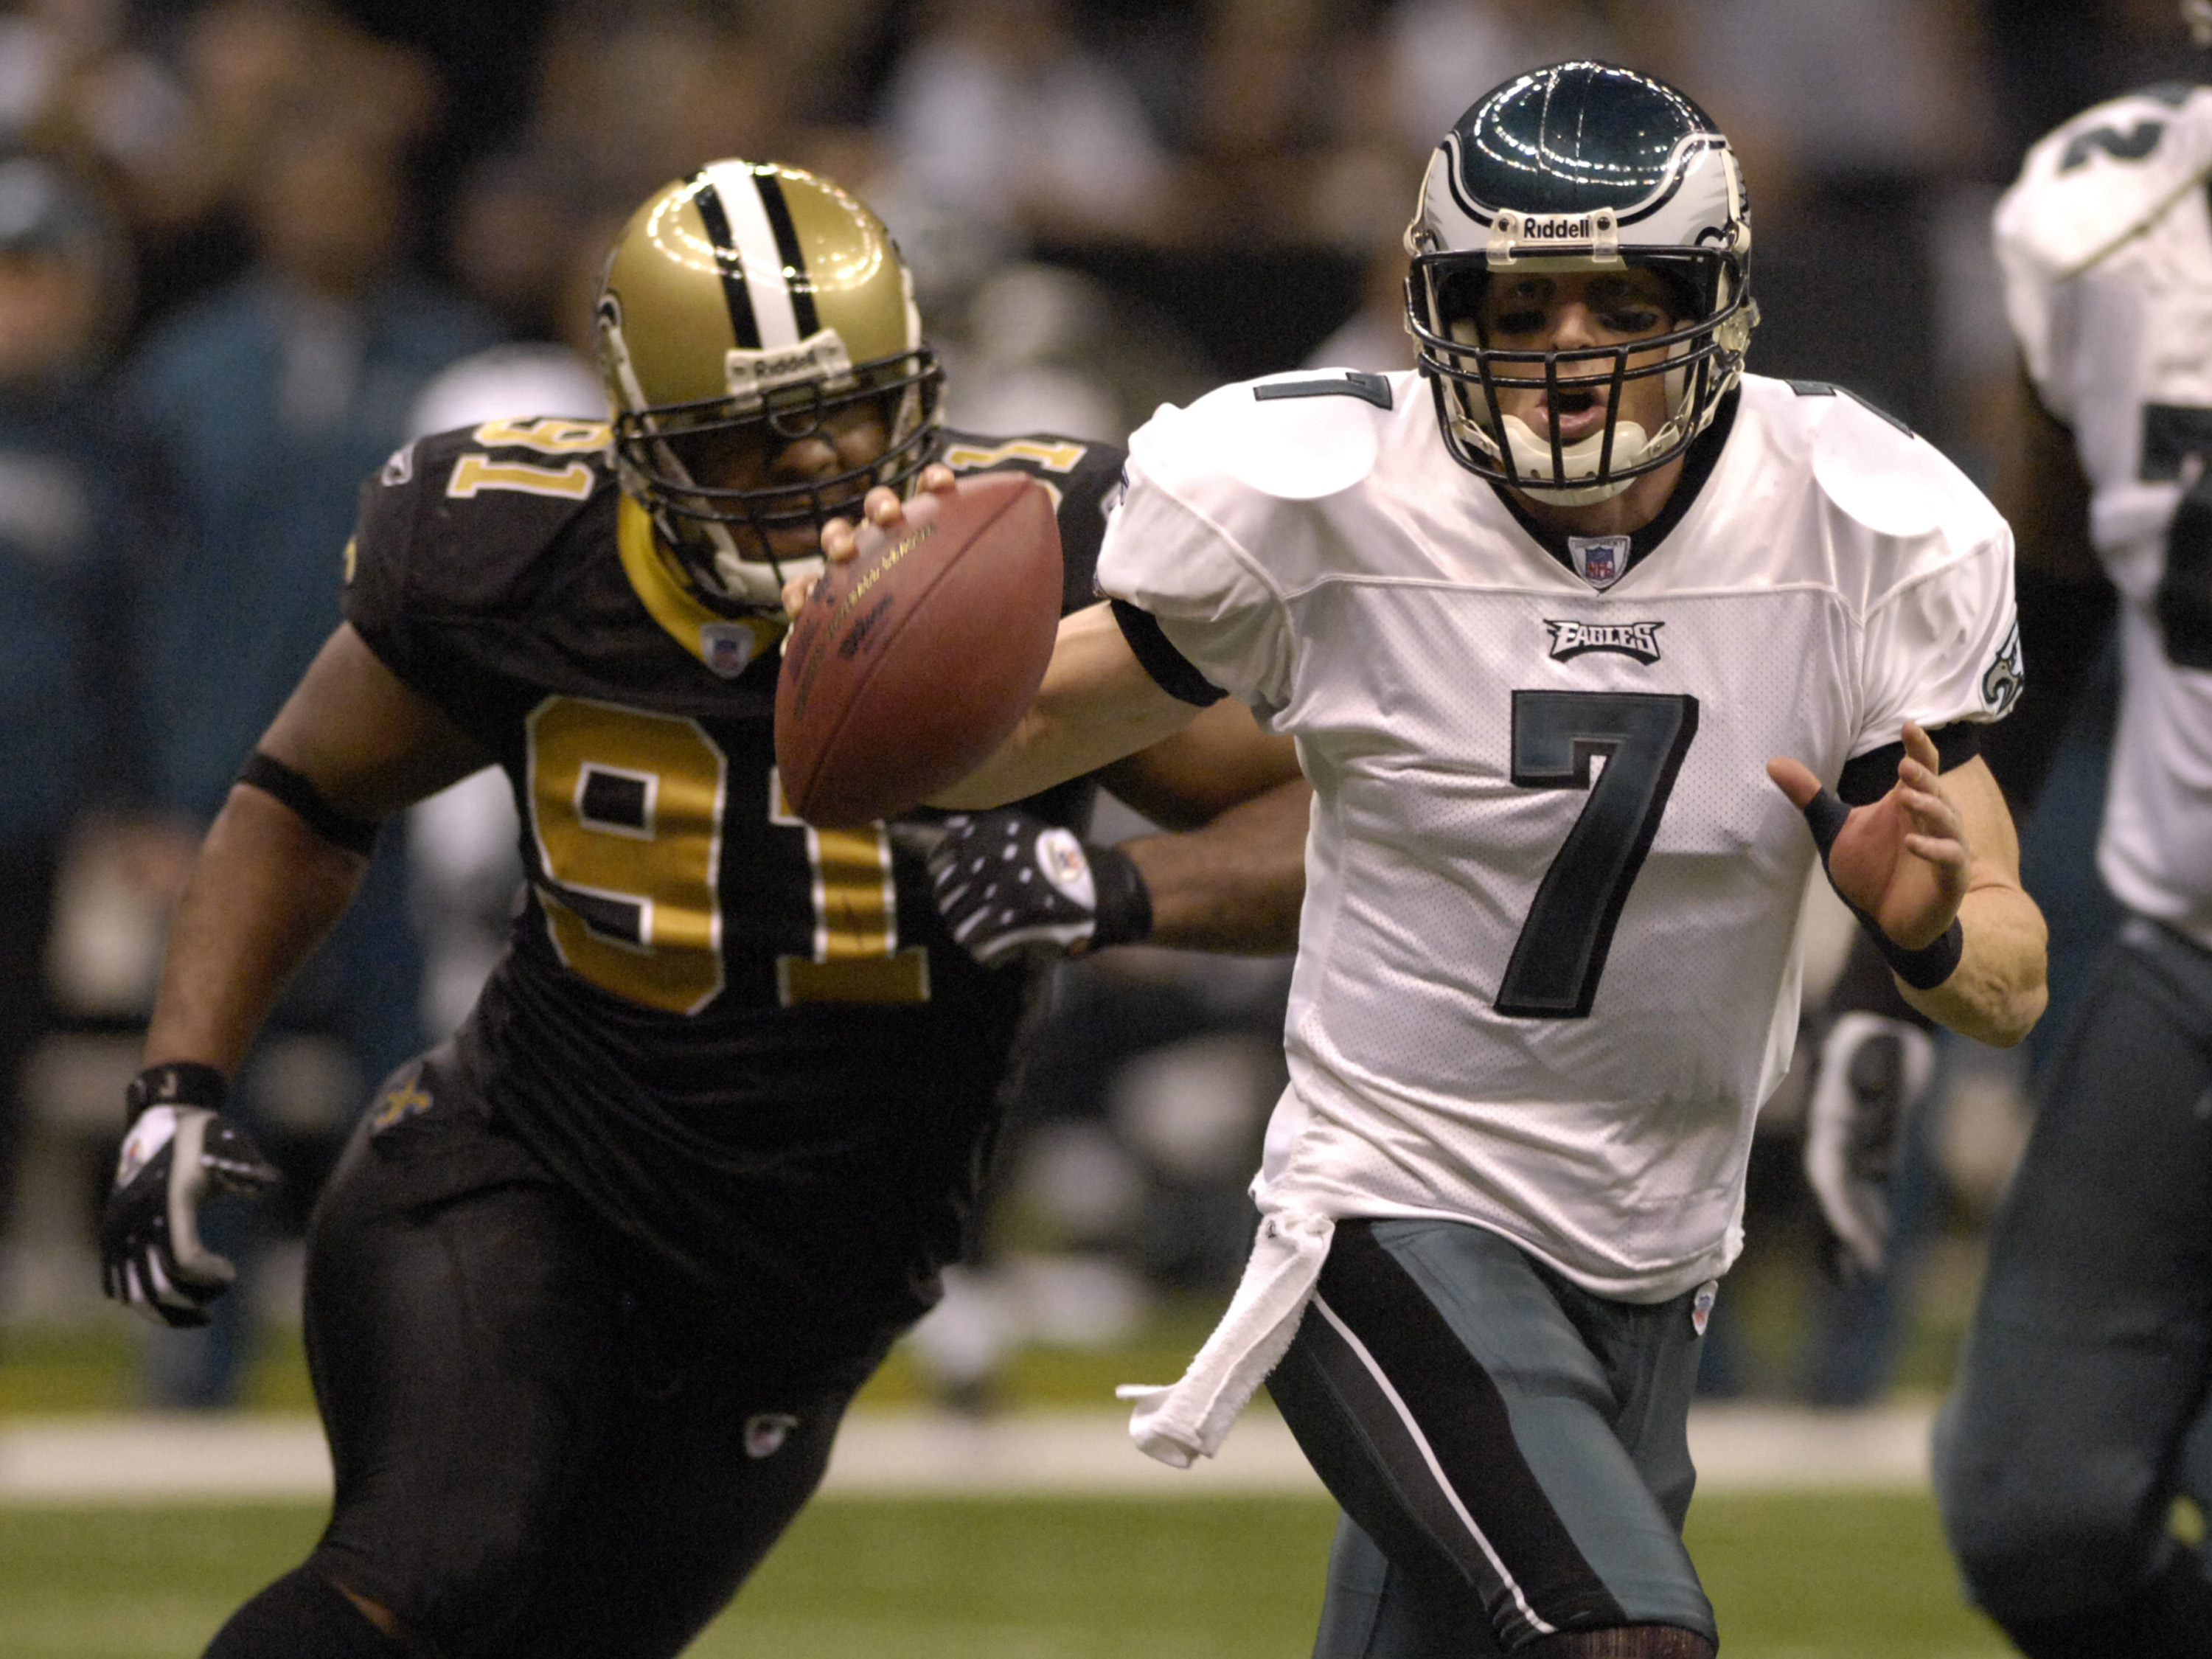 Philadelphia Eagles quarterback Jeff Garcia scrambles for a gain against the New Orleans Saints  in an NFL second-round playoff game on January 13, 2007 in the Superdome in New Orleans, Louisiana.  (Photo by Al Messerschmidt/Getty Images)